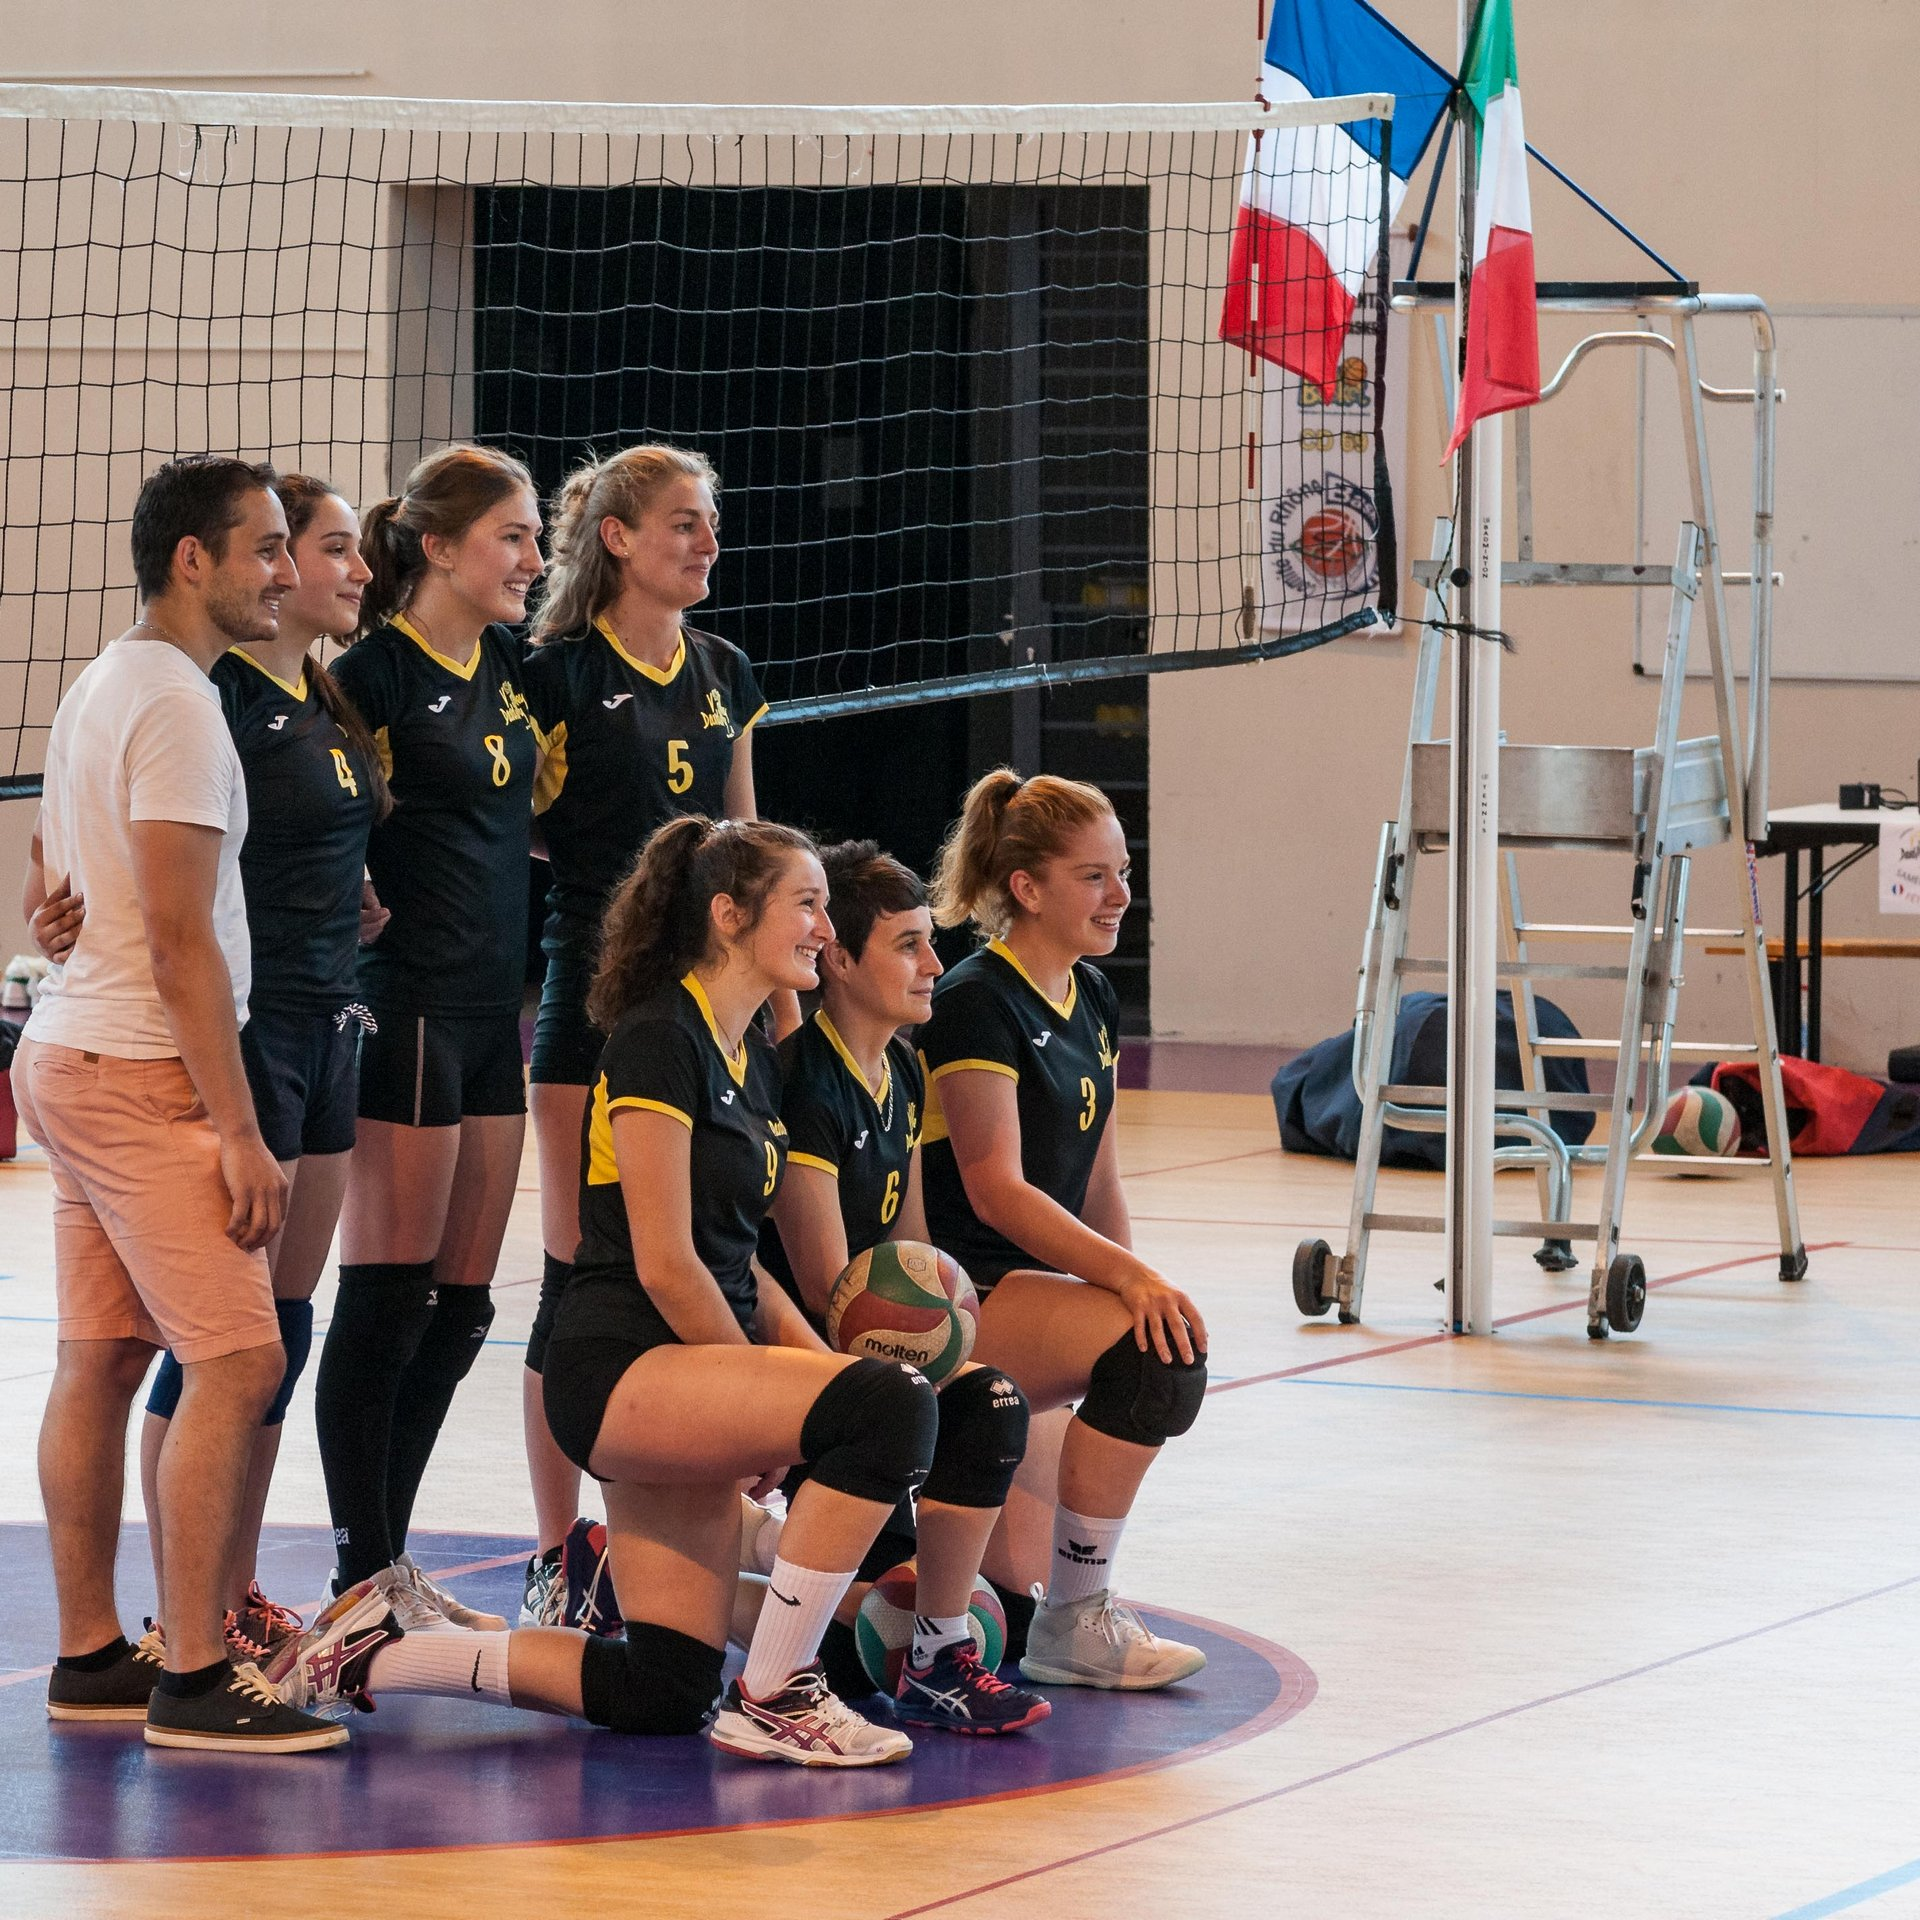 08_Volley_01_I. DURAND - 1